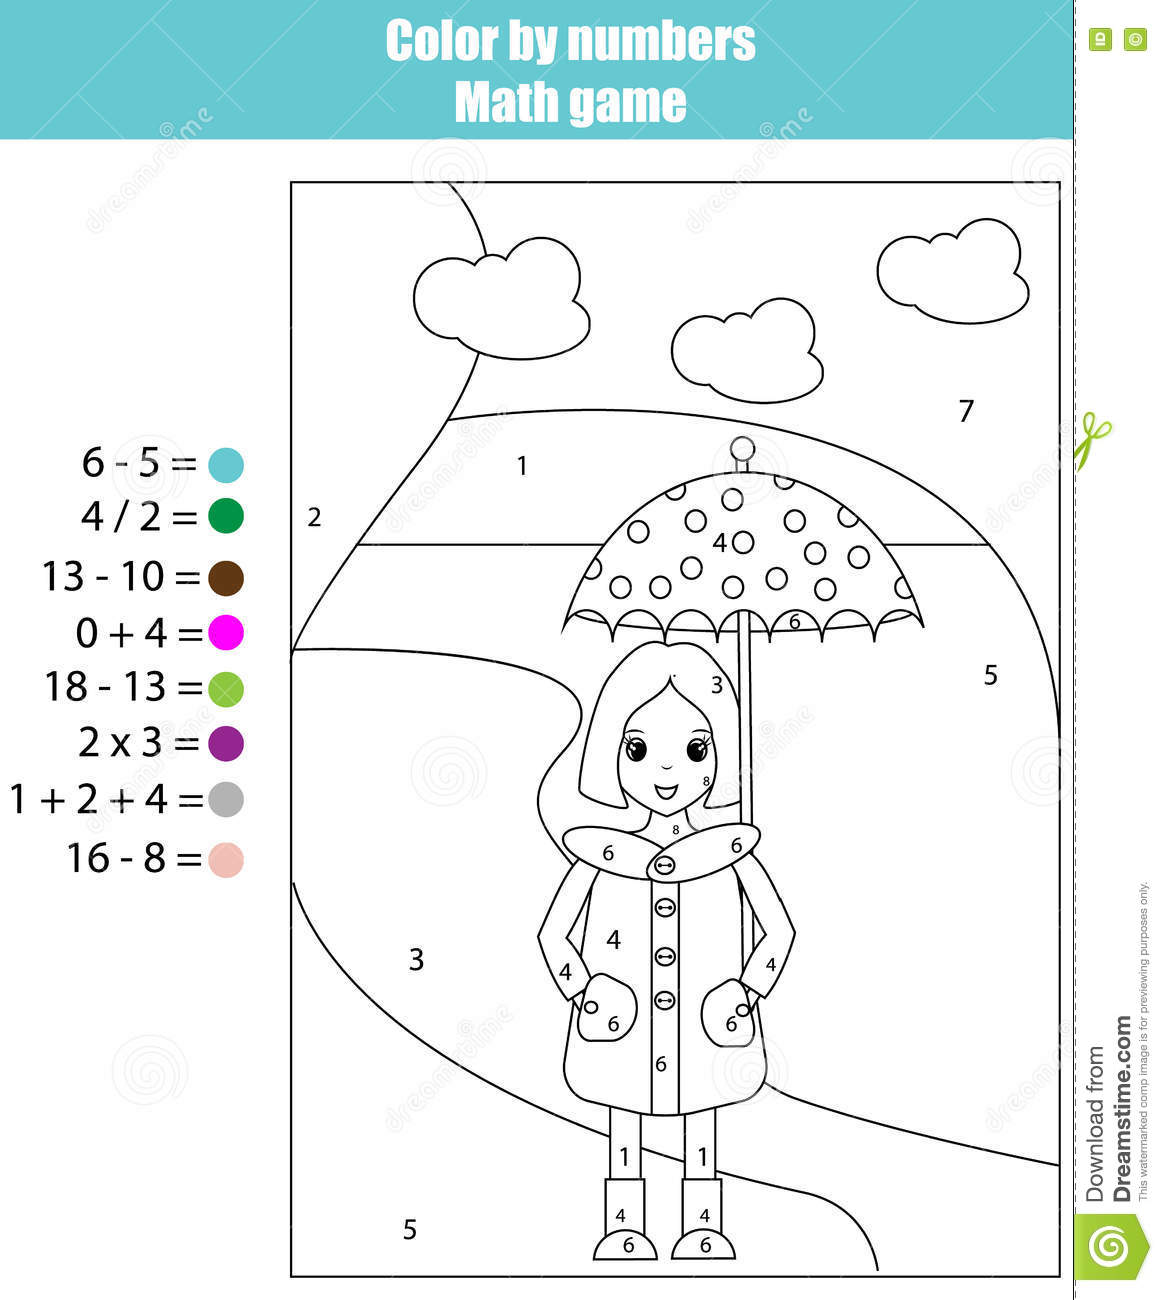 coloring page with color by numbers math game stock vector